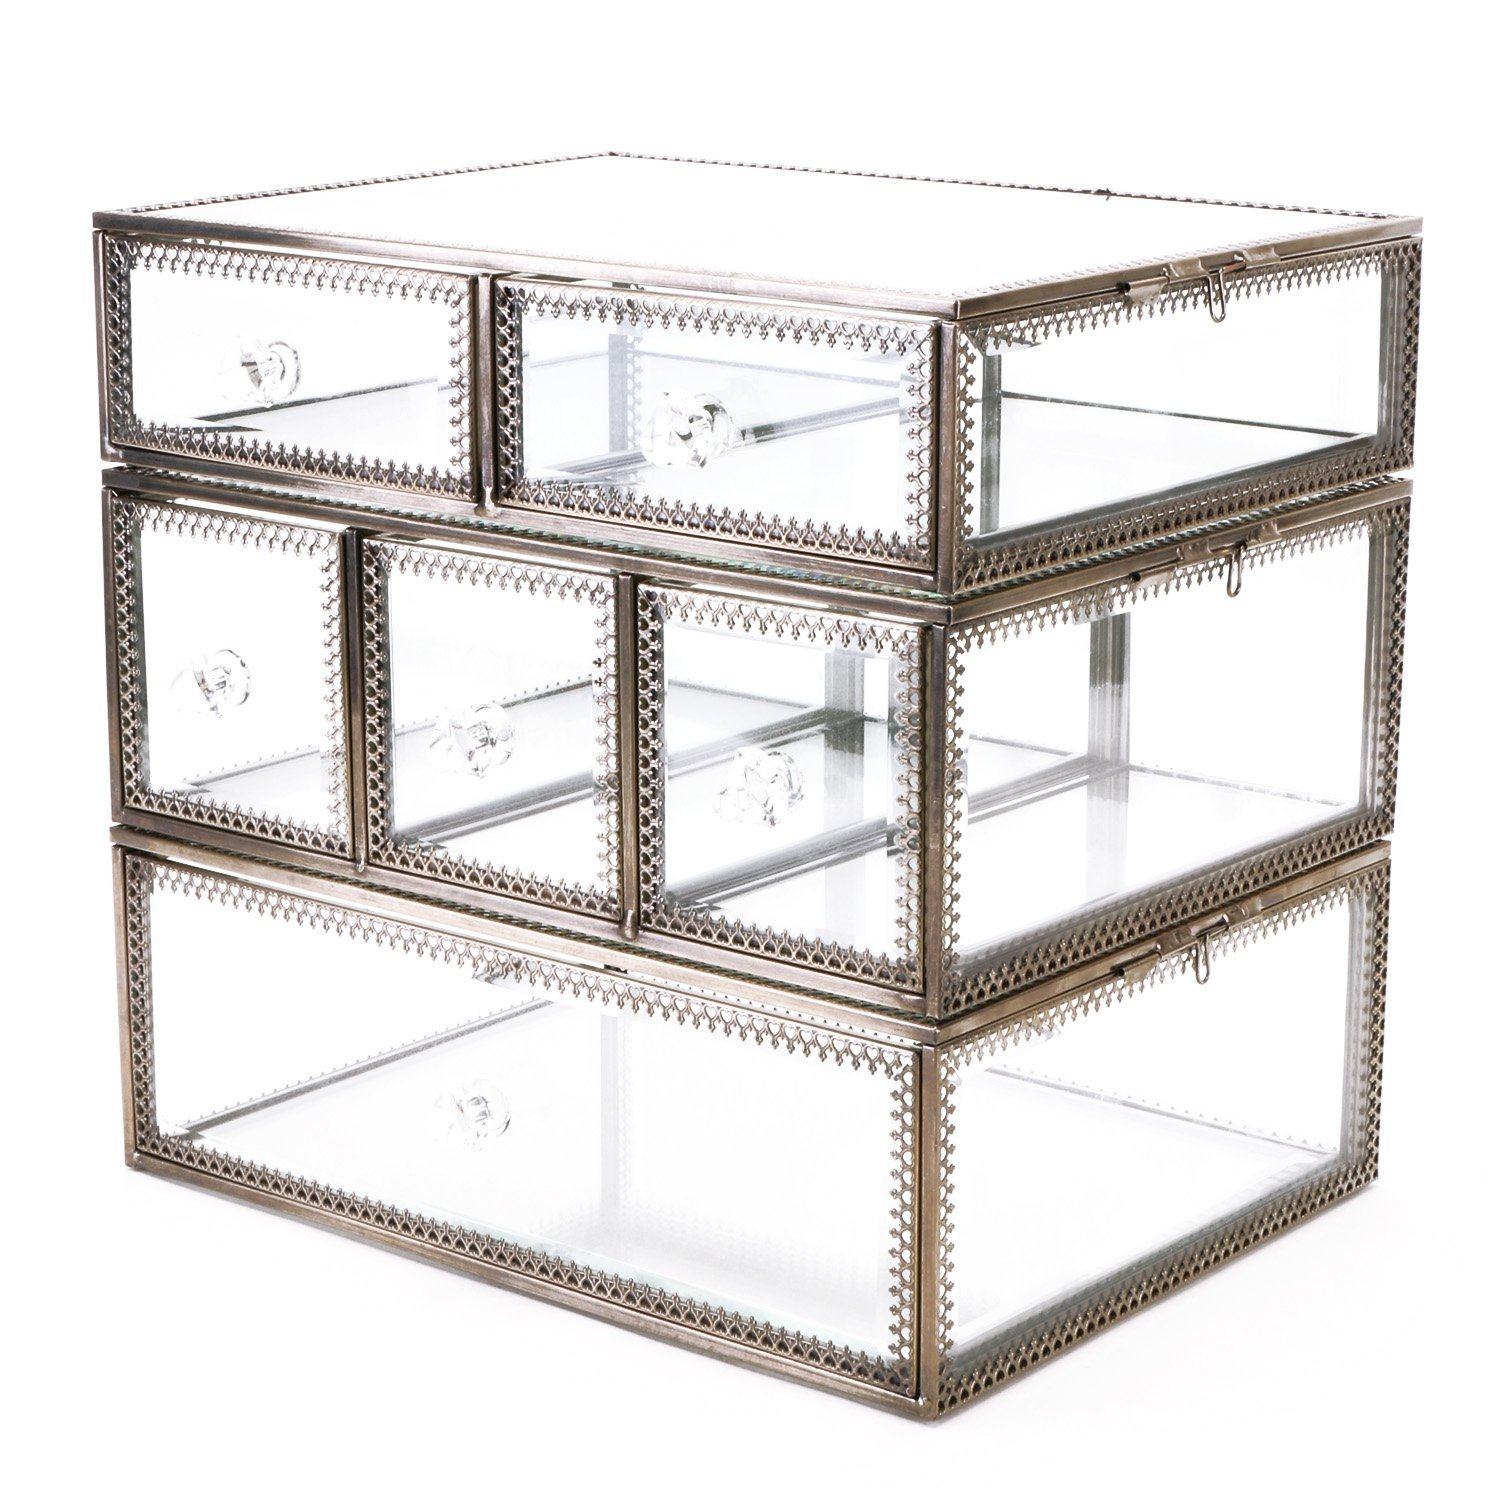 Hersoo Large Antique Mirror Glass Makeup Organizer Jewelry &Cosmetic Display, Stackable Dresser Storage for Vanity with Lid Dustproof Beauty Accent Home Decorative Box (drawerset-br) by Hersoo (Image #1)